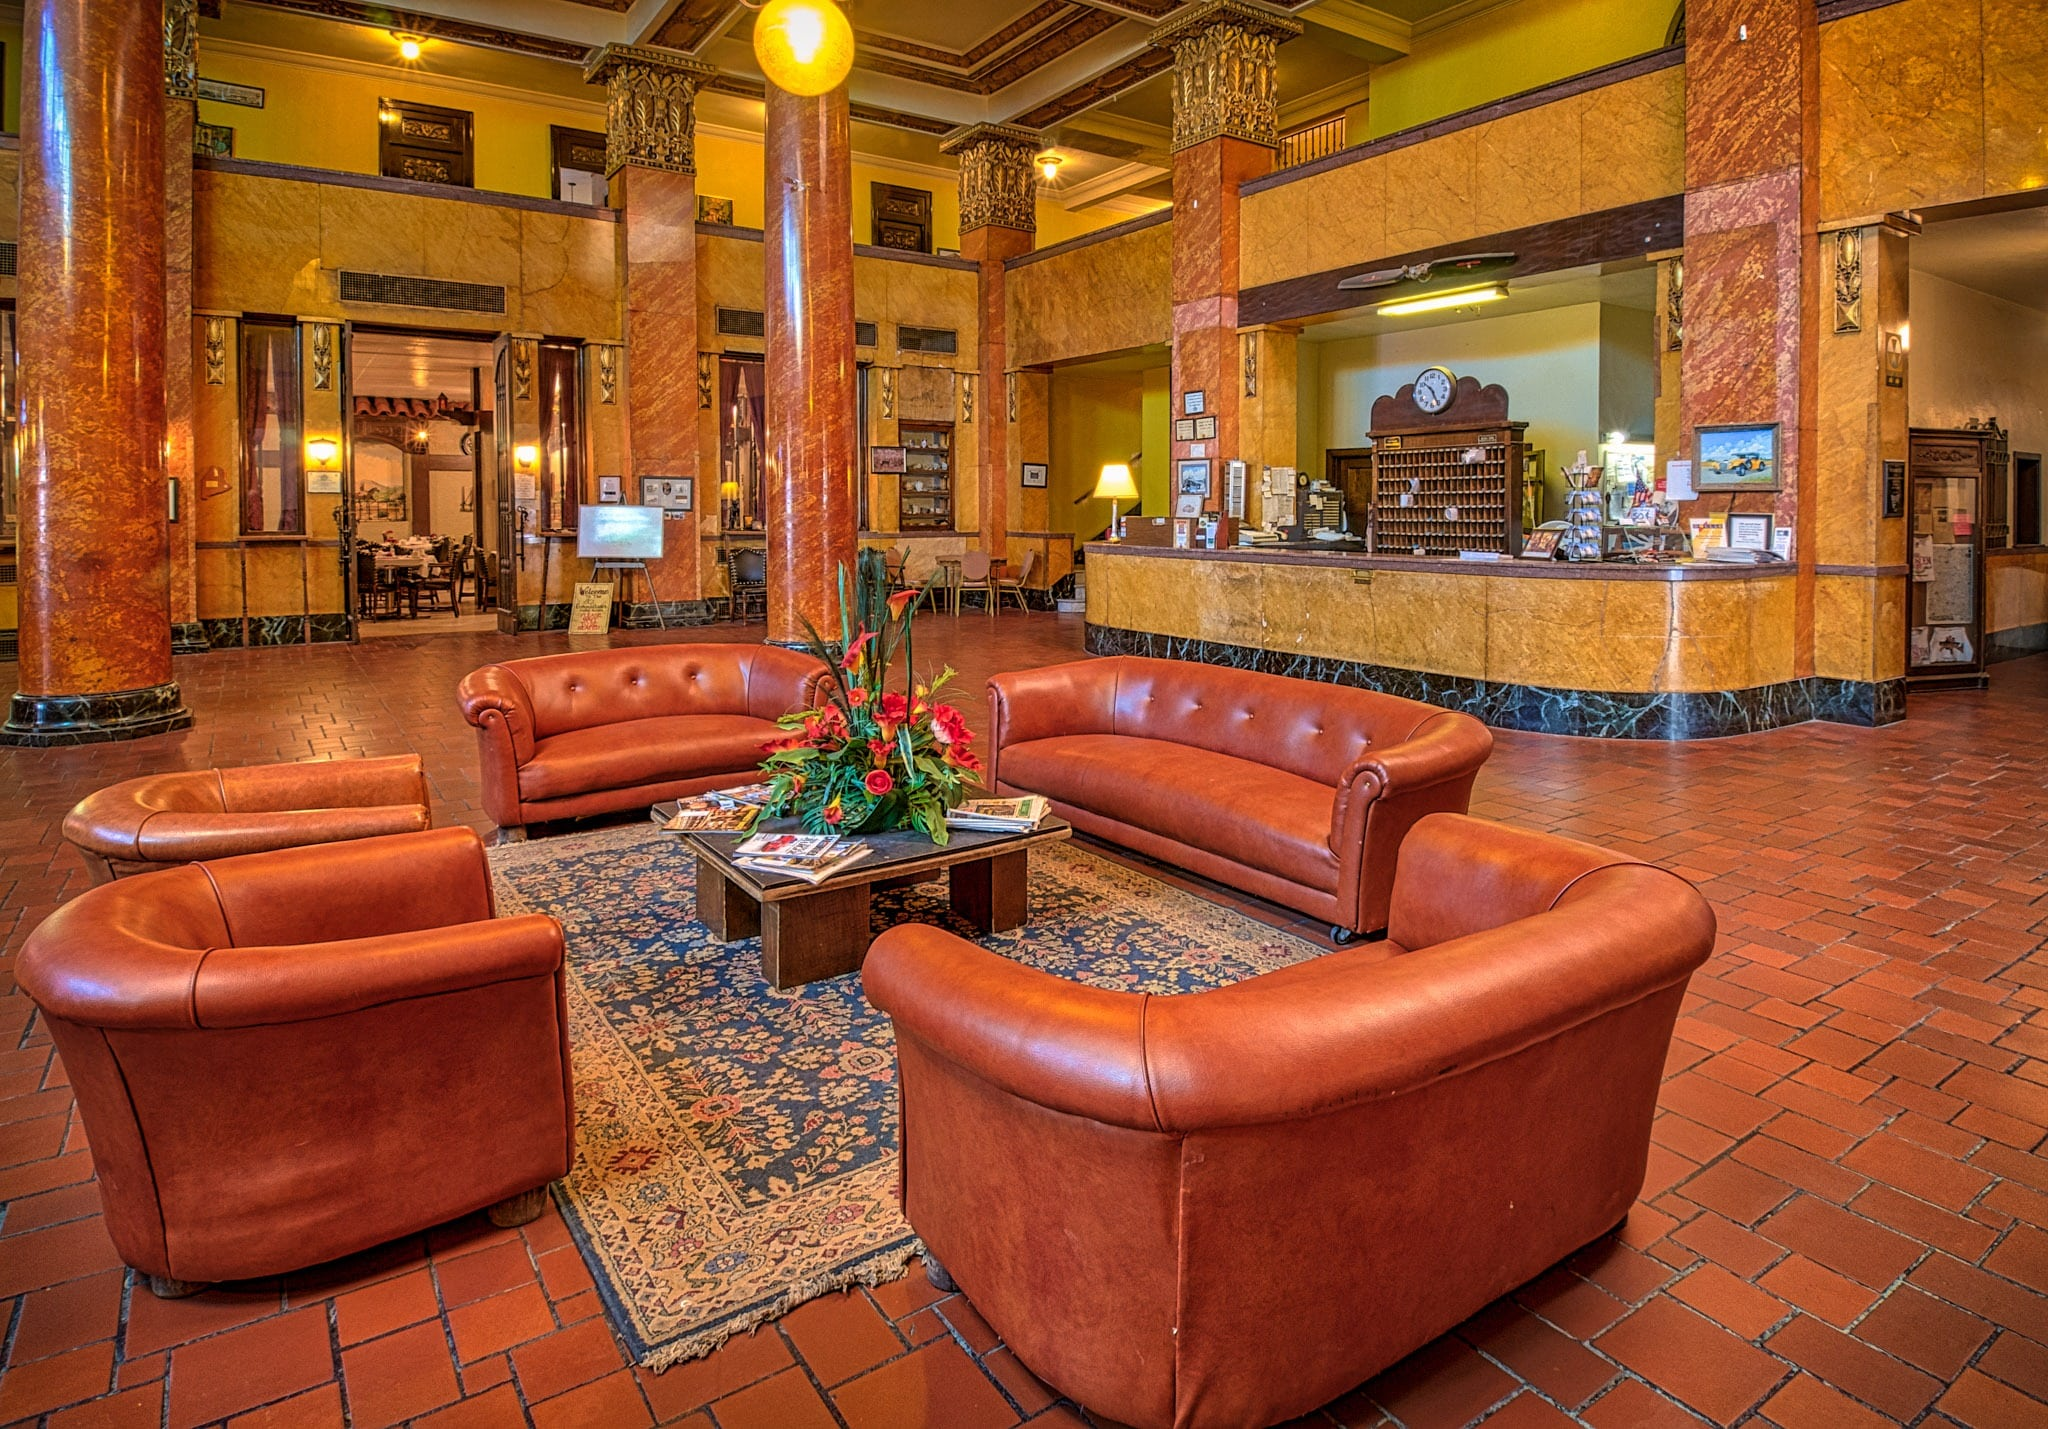 A view of the grand Gadsden Hotel lobby highlighting the leather furniture, tile floors, Italian marble, stained glass, and expansive grand staircase.